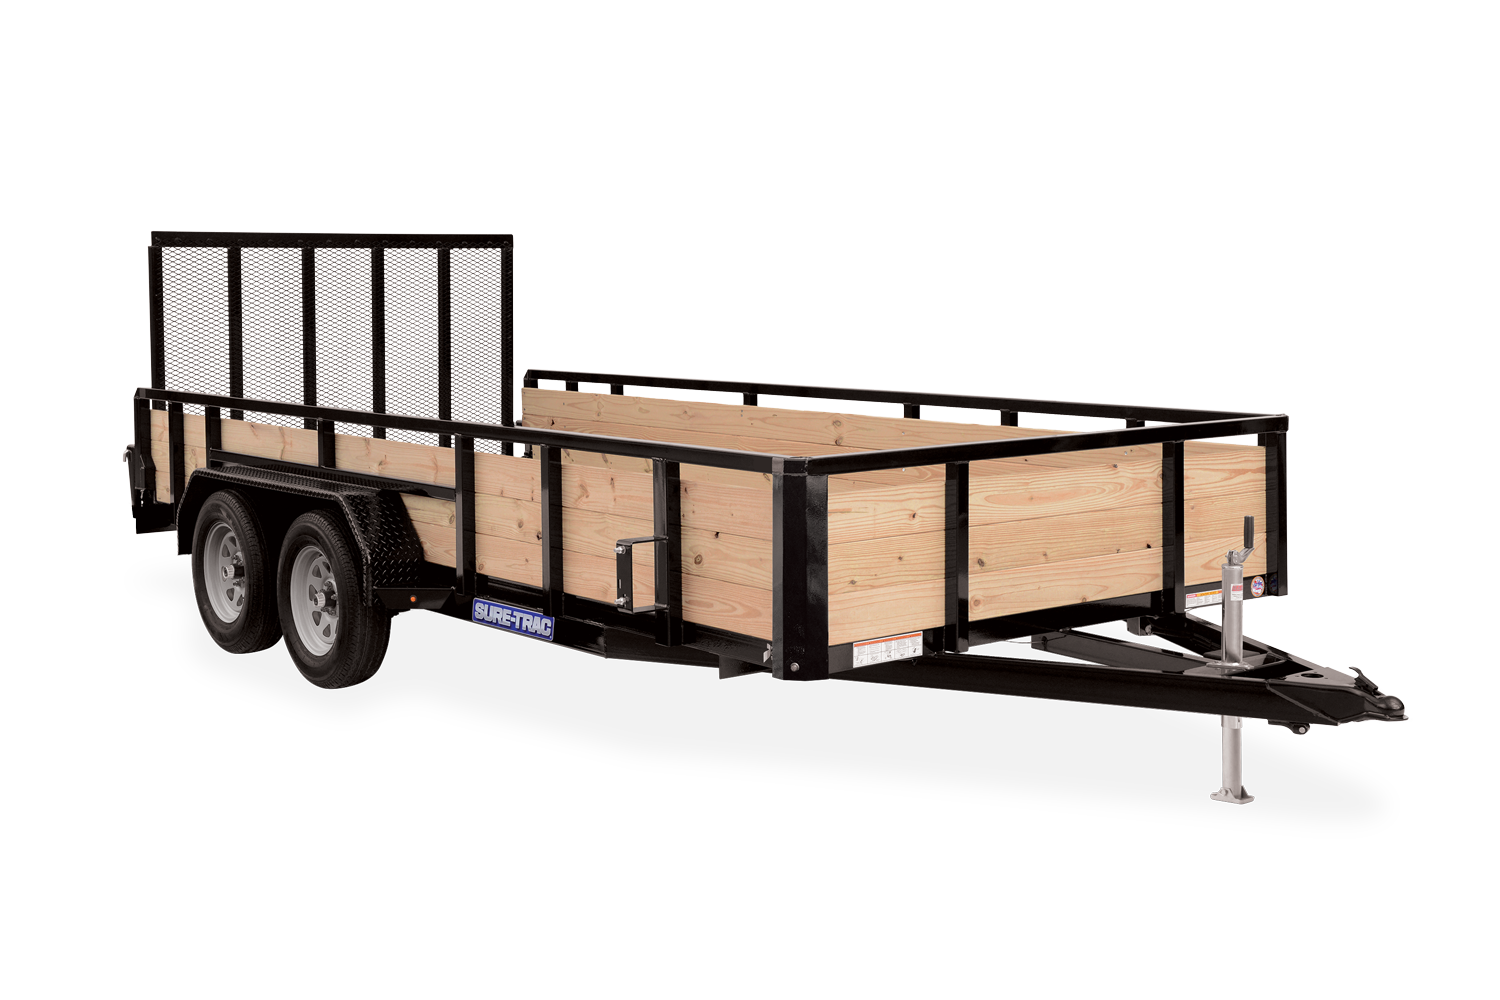 Categorize the Utility Trailers